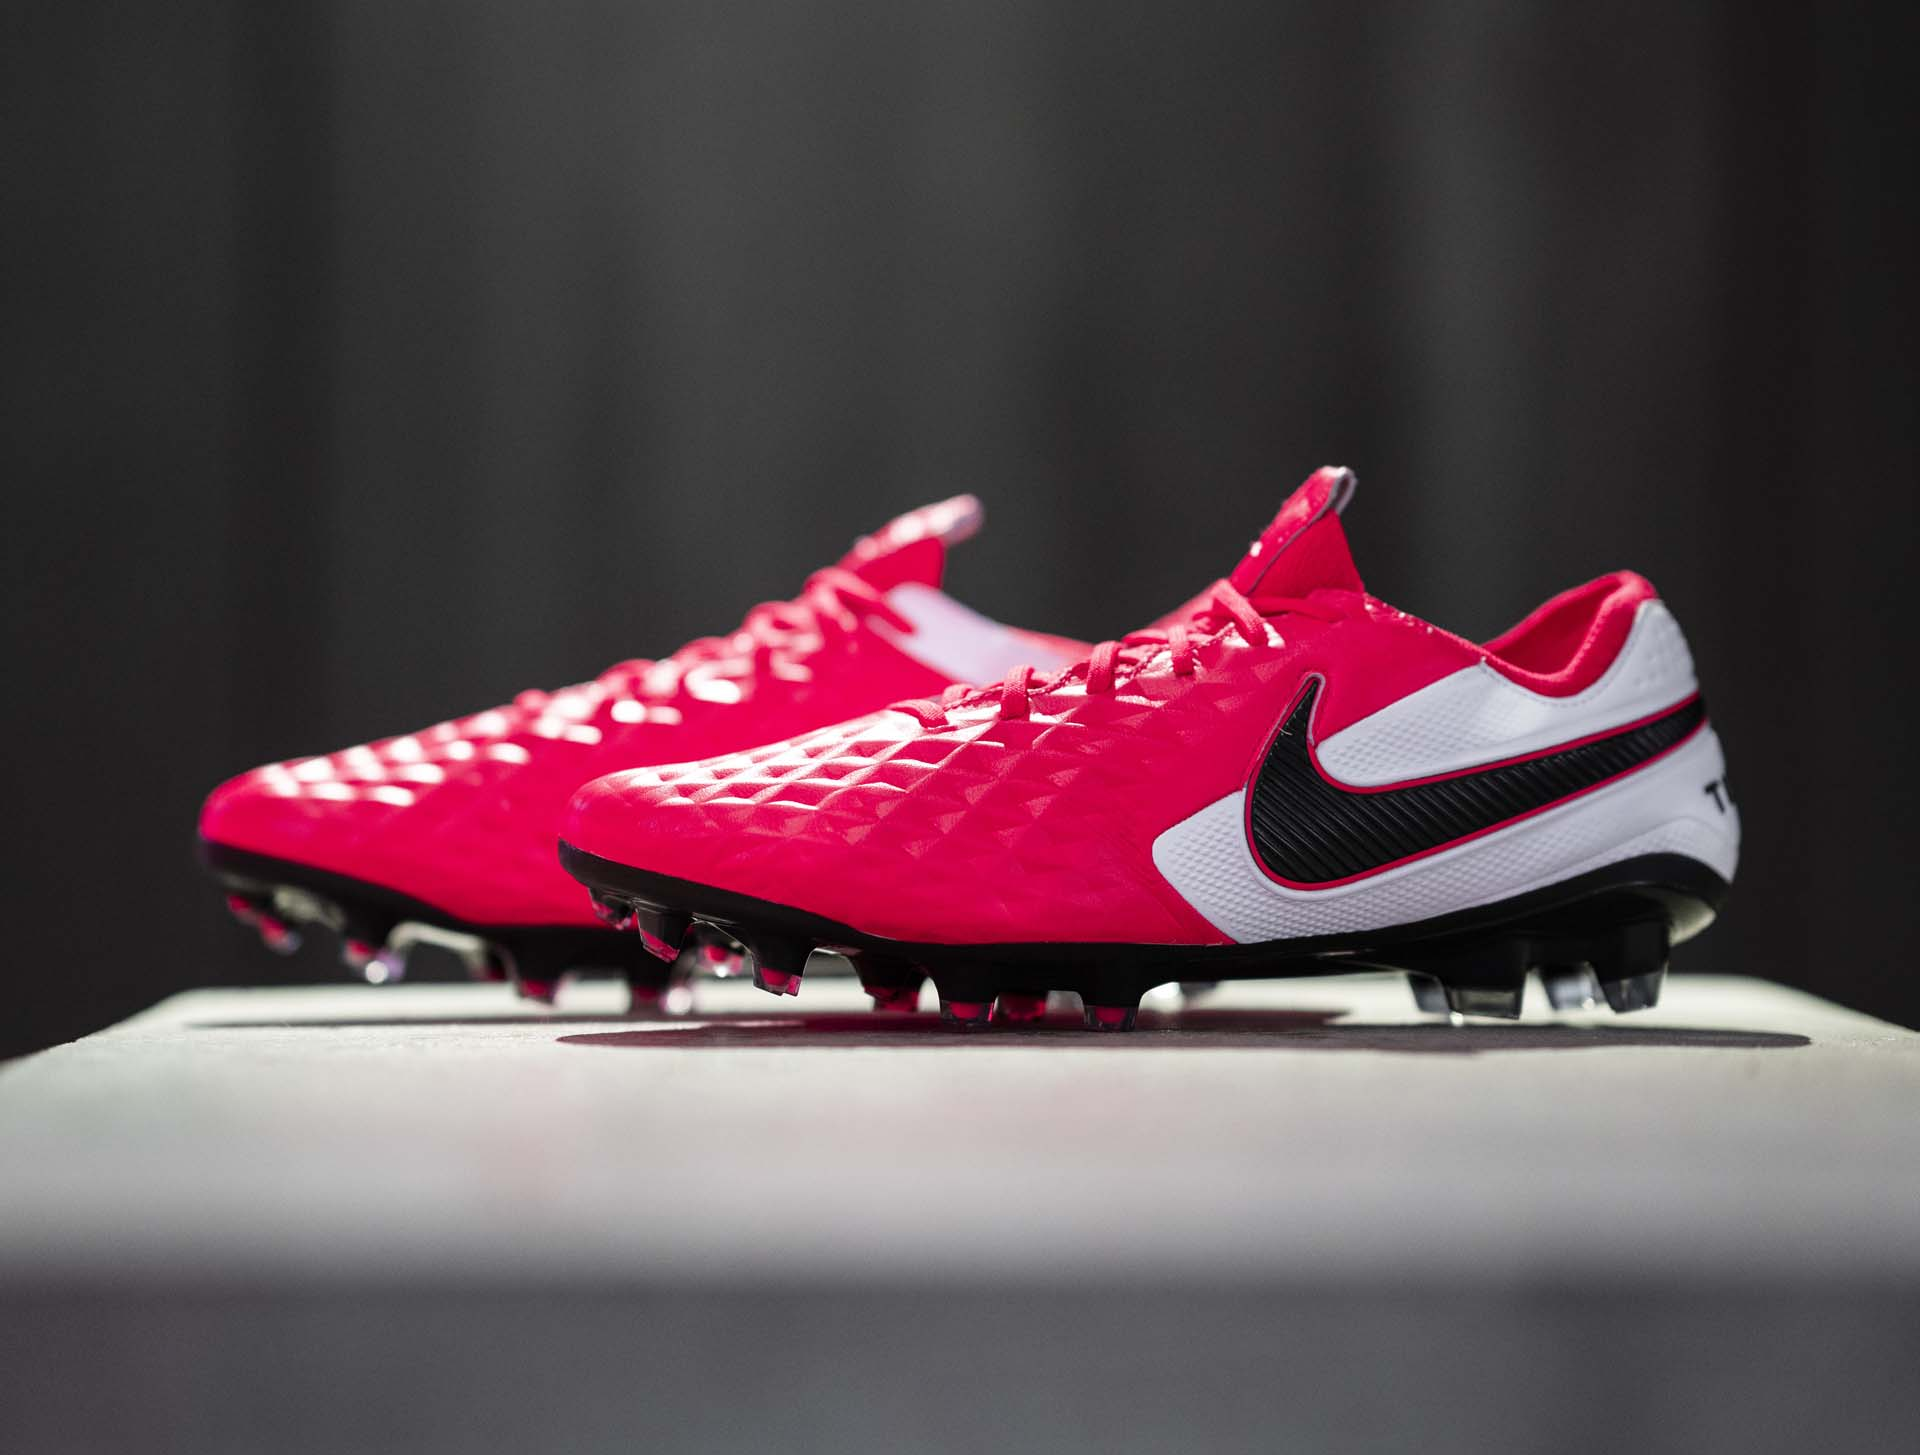 7-nike-future-lac-mercurial-collection-min.jpg